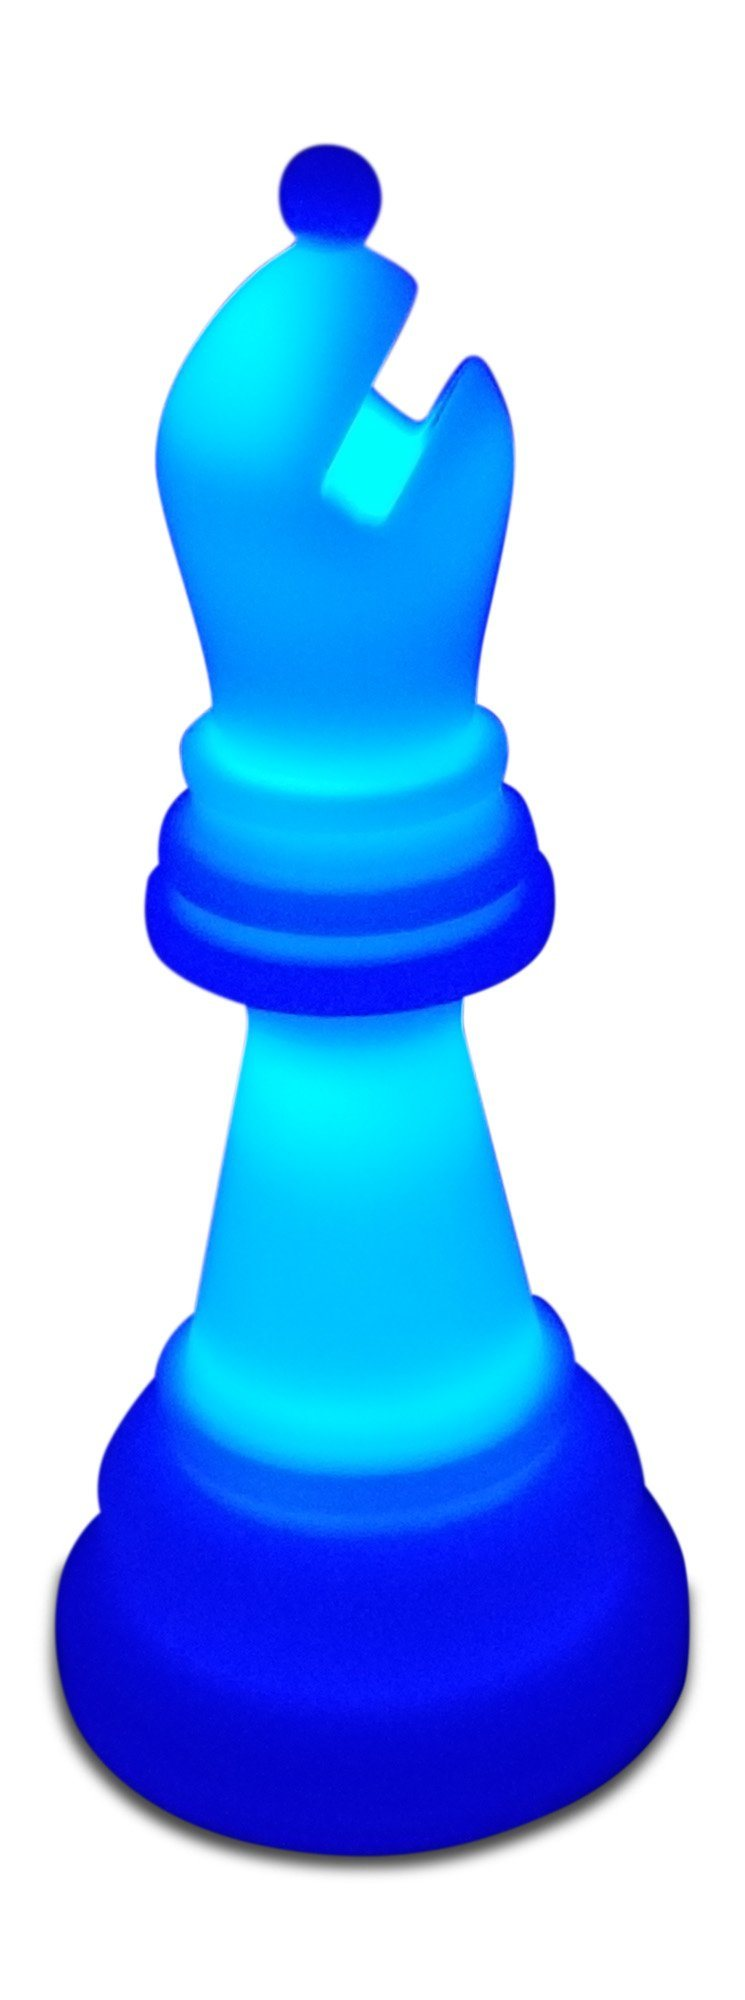 MegaChess 20 Inch Perfect Bishop Light-Up Giant Chess Piece - Blue |  | MegaChess.com